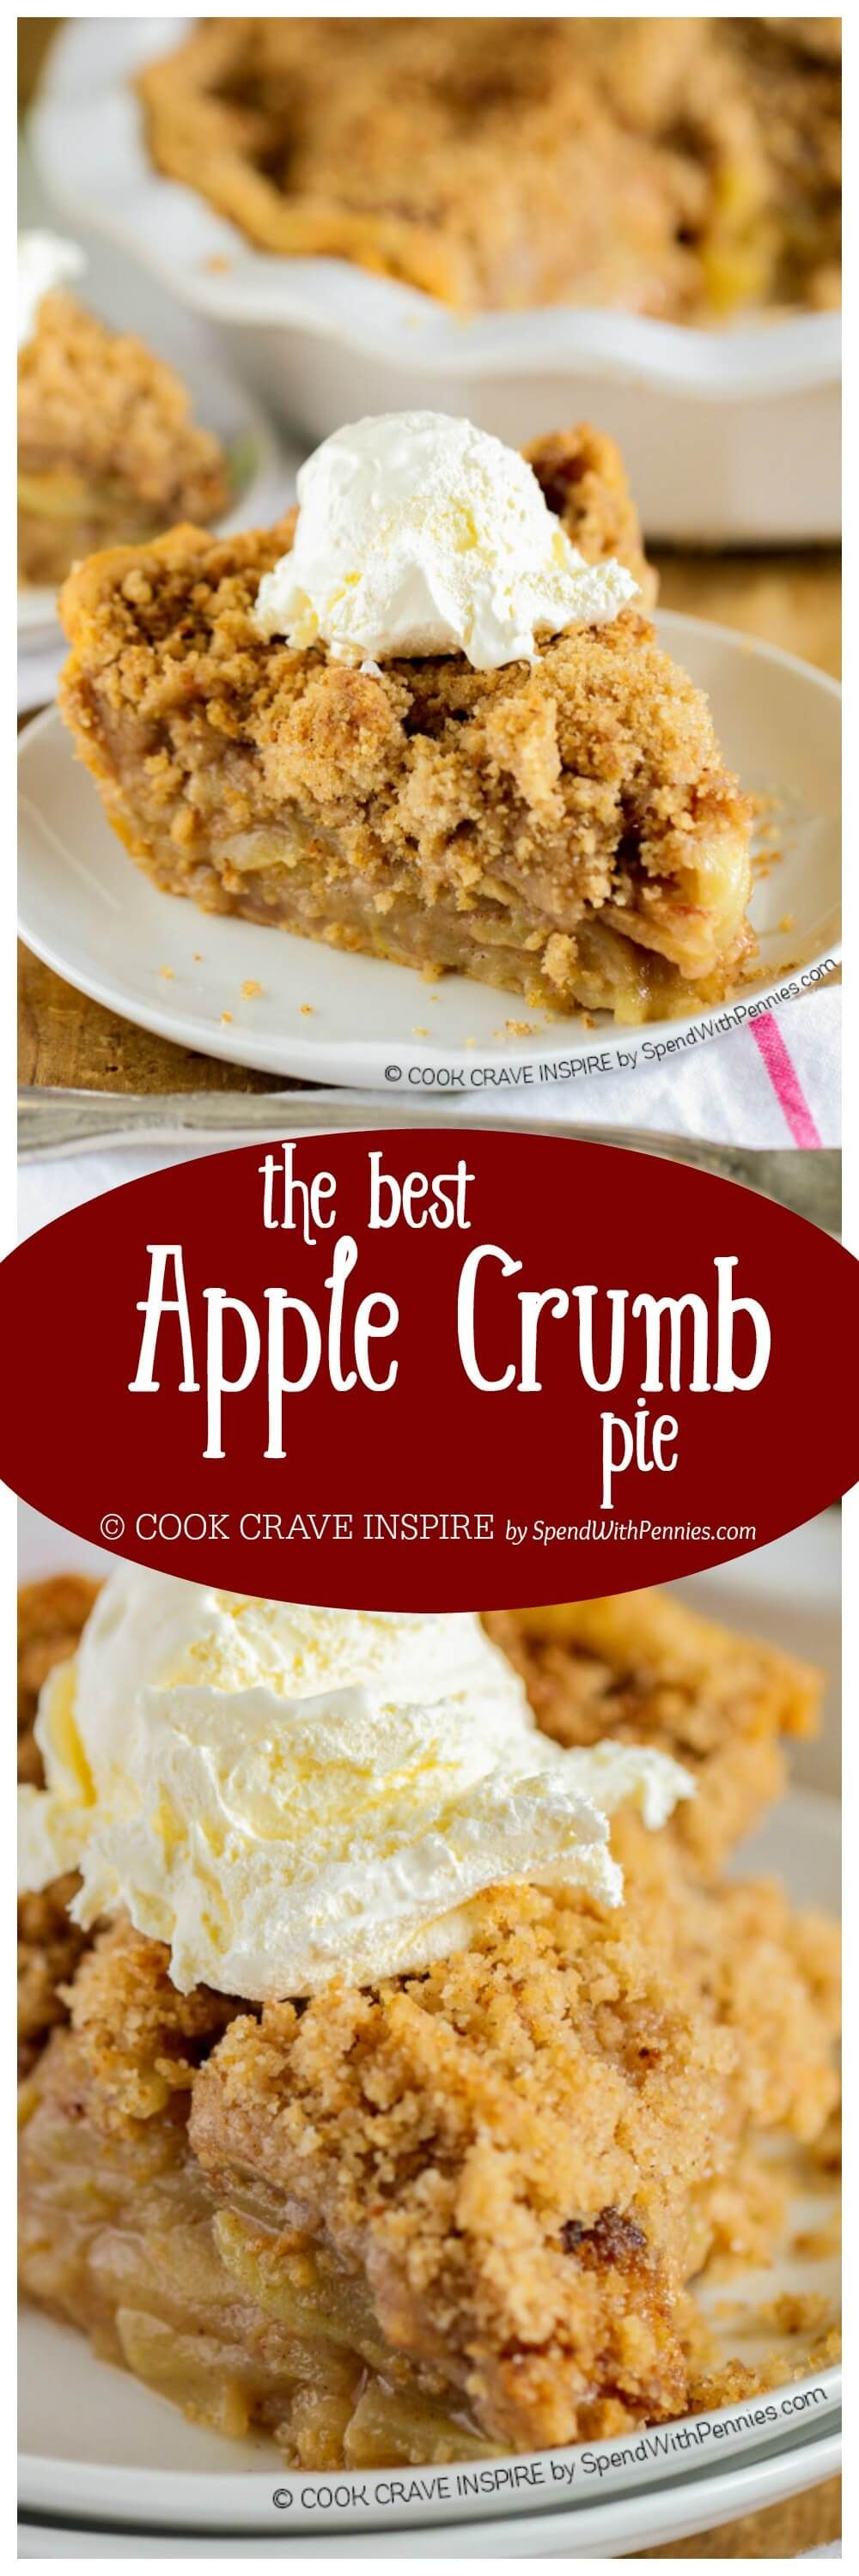 The BEST Apple Crumb Pie! This is truly the best apple pie recipe you'll ever make! Loaded with fresh tart apples and topped with a sweet brown sugar crumble, this is one recipe that will be requested over and over! #applerecipes